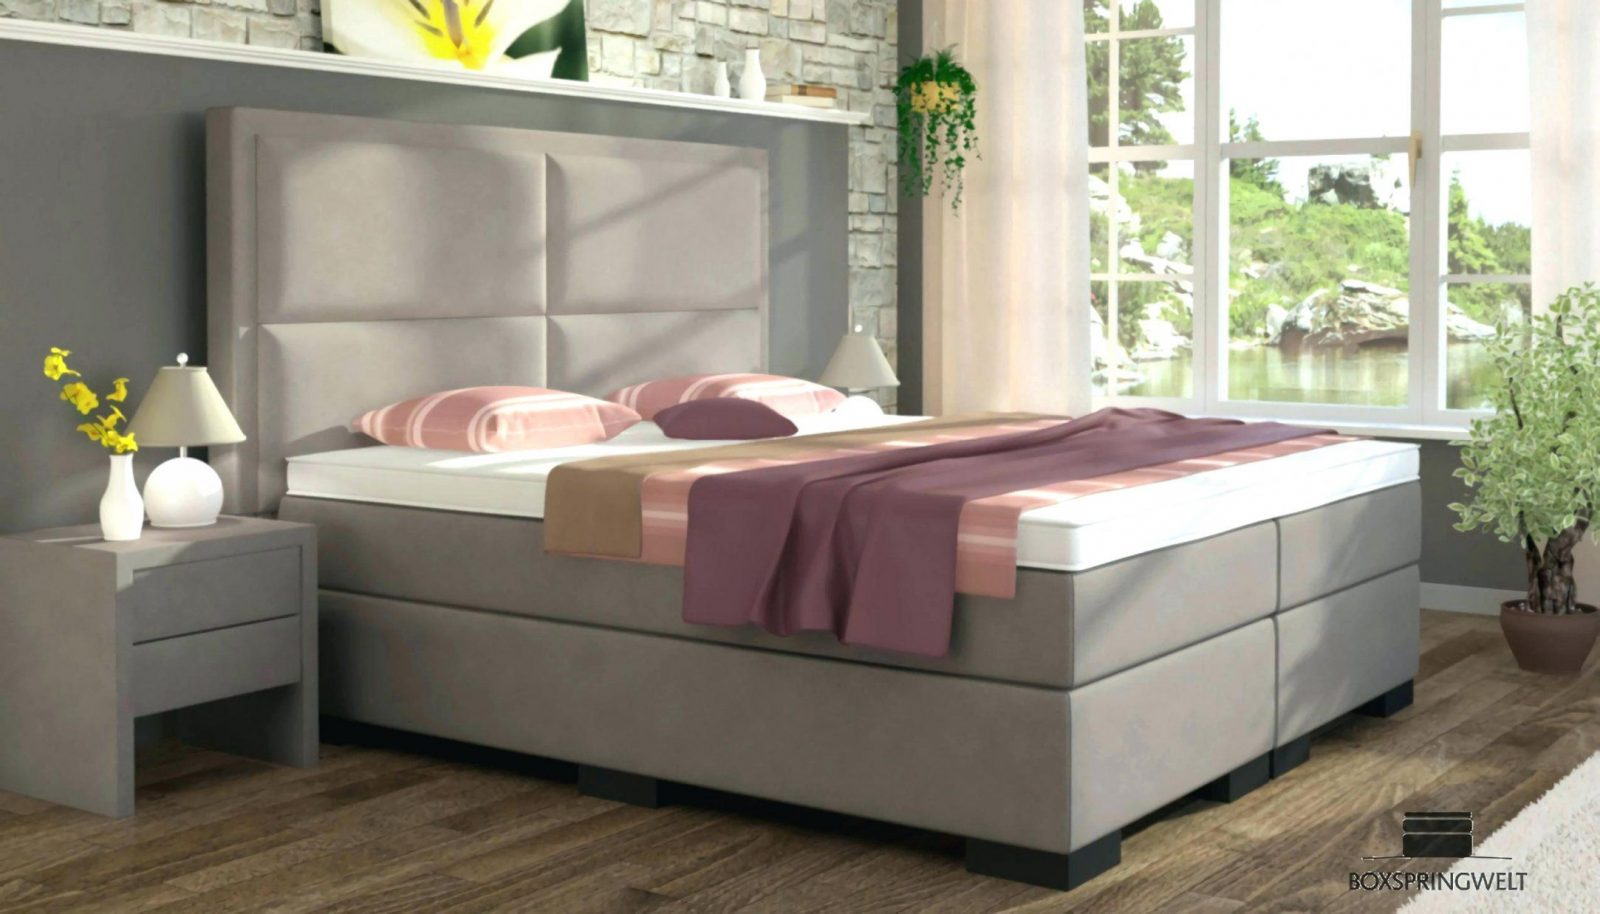 Boxspringbett 100x200 Mit Bettkasten Otto Boxspringbett 100x200 Mit 140 200 Joe Cm Stoff Ranch Graphite